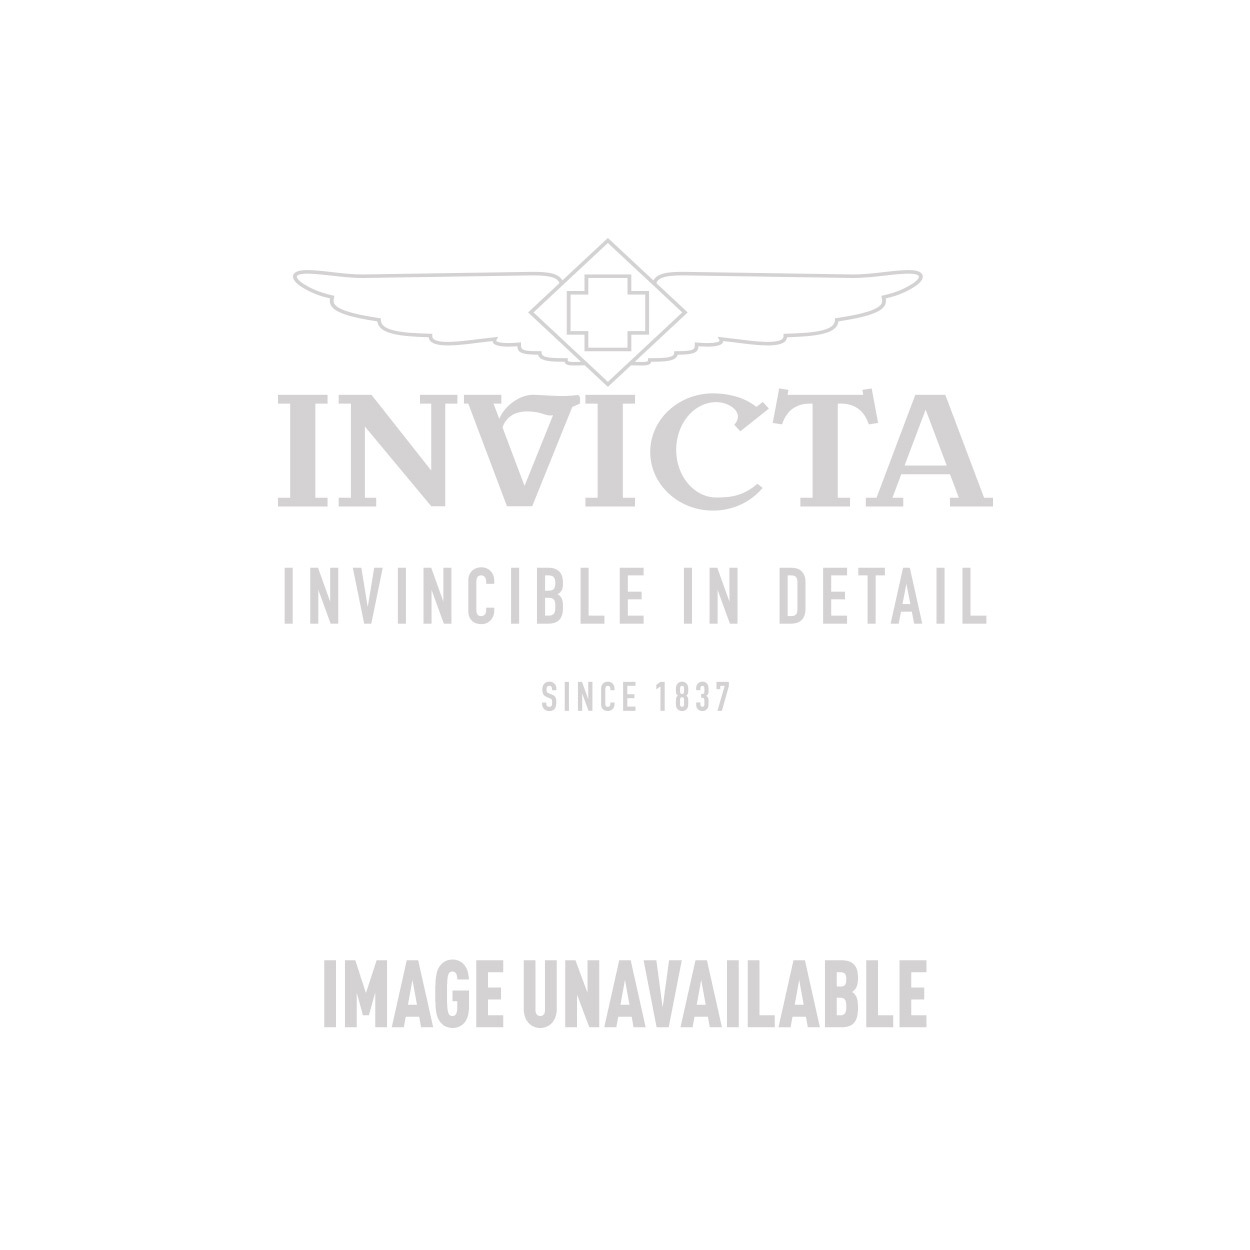 Invicta Specialty Swiss Movement Quartz Watch - Stainless Steel case  Stainless Steel band - Model 20504